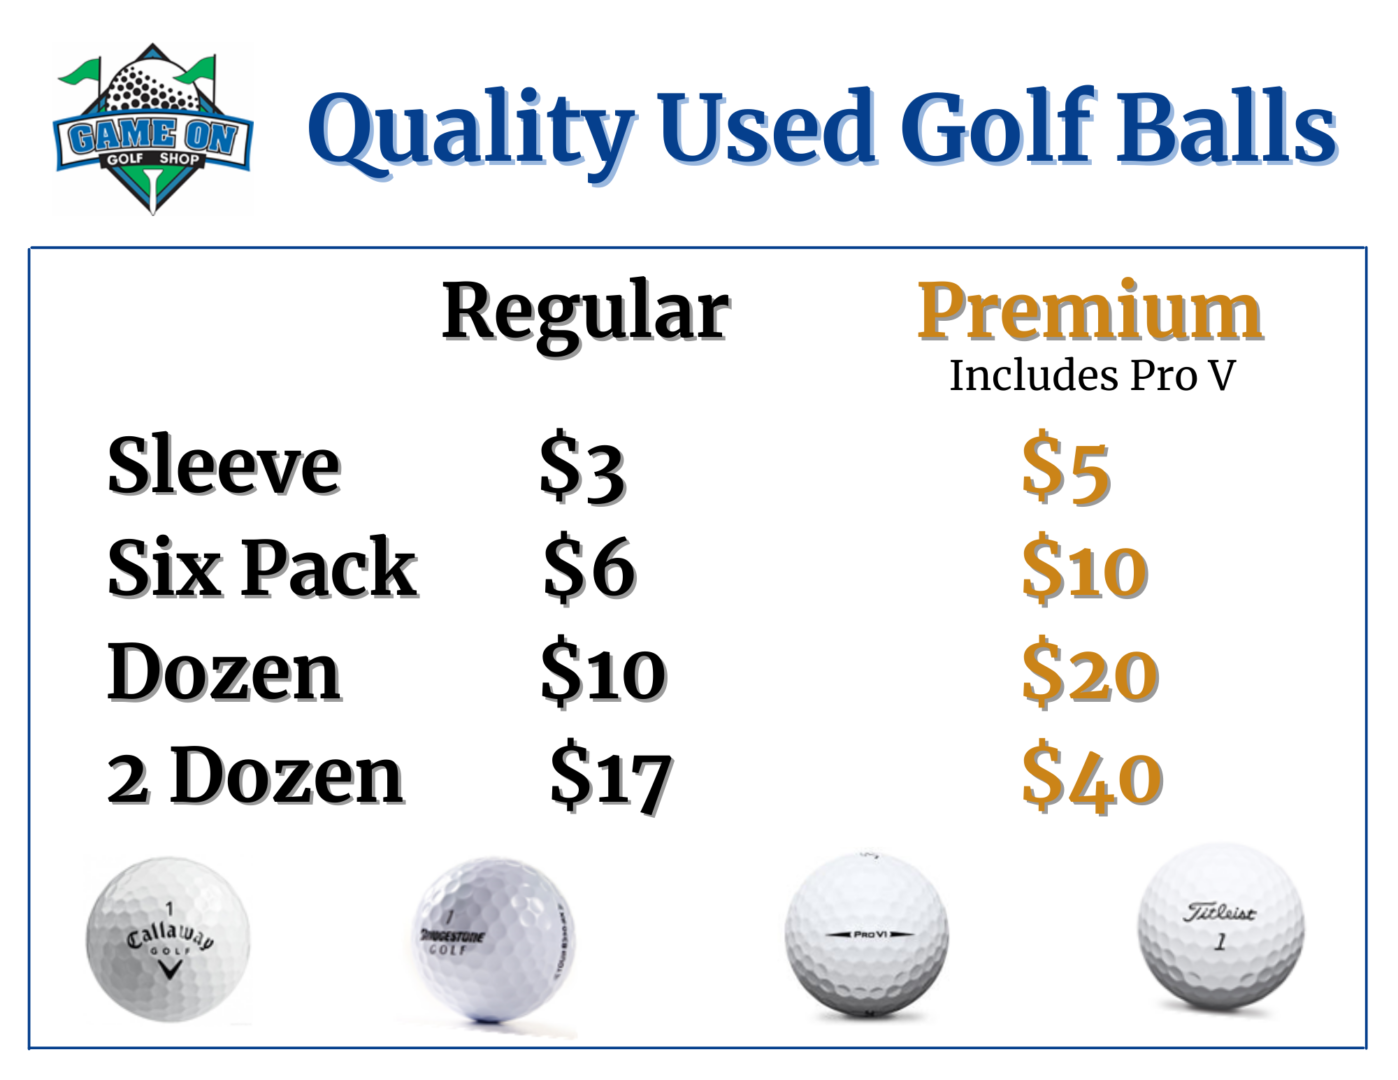 Quality Used Golf Balls Canva